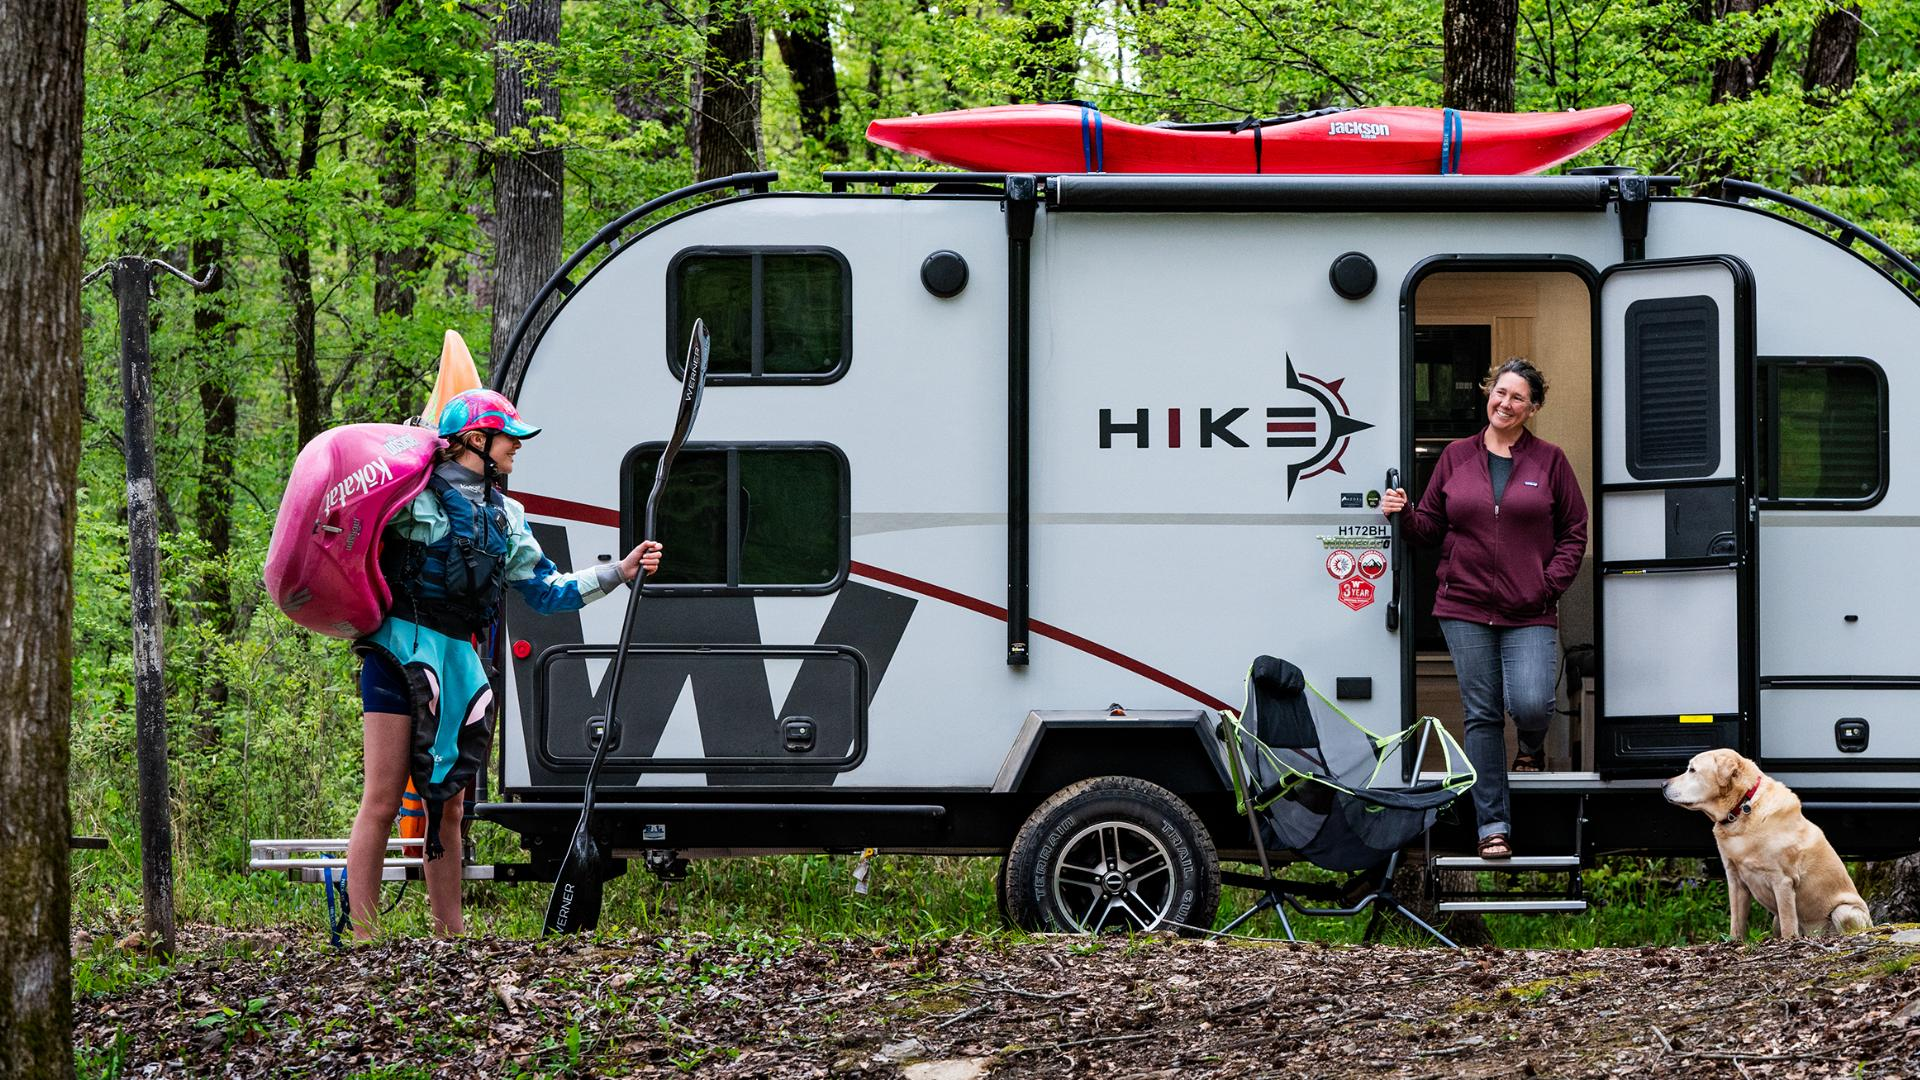 The Hike was designed as a sportier, more versatile breed of camping trailer, able to accommodate all kinds of gear